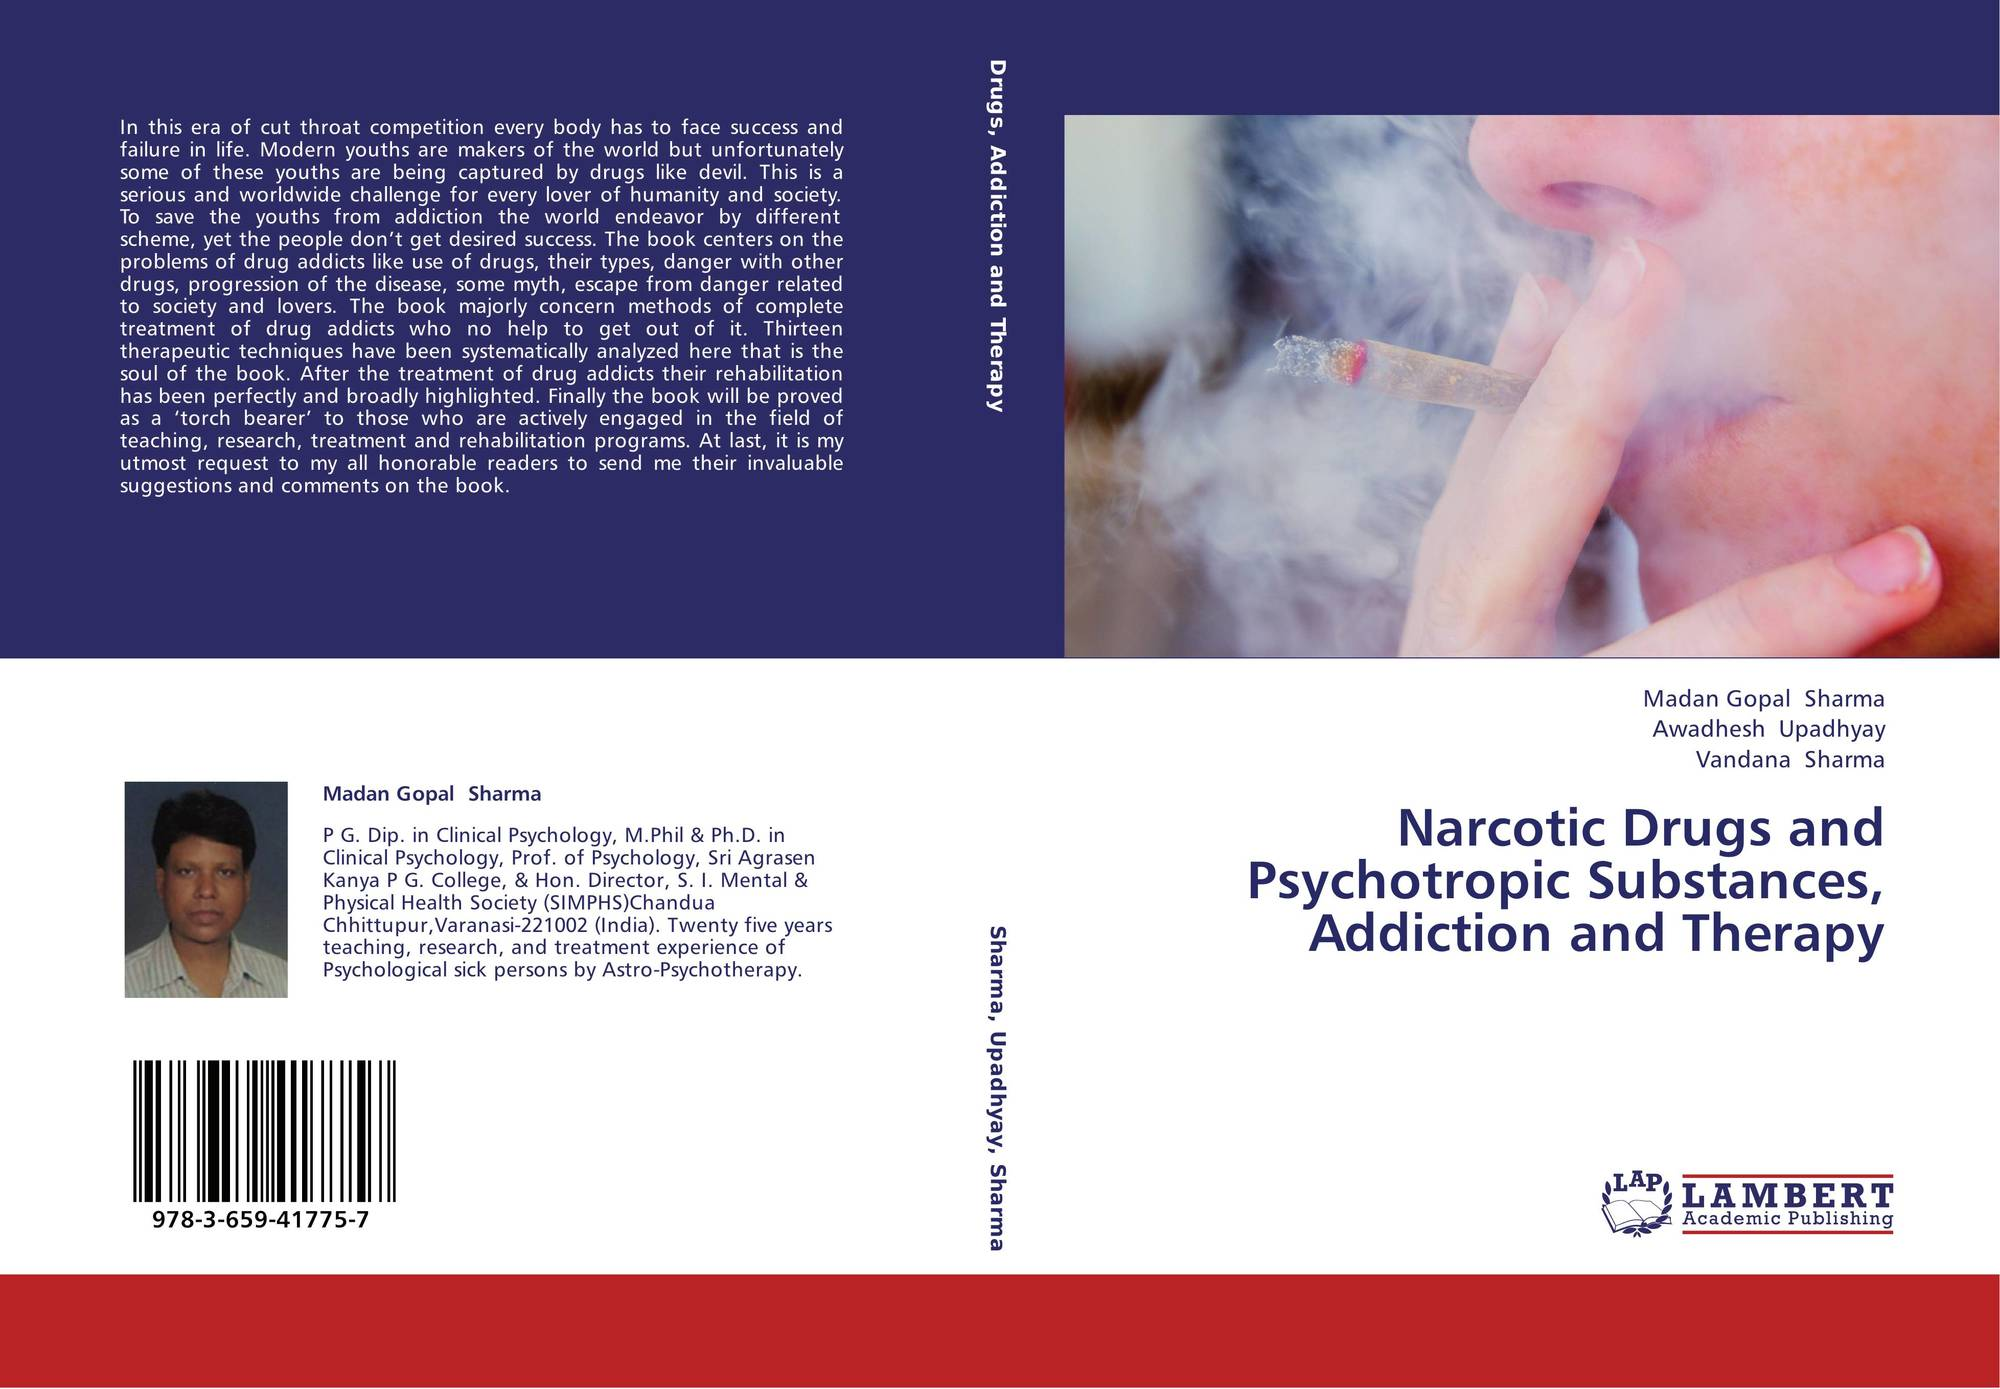 the issue of illicit psychotropic drugs of the modern age The illicit drugs trade (also referred to as the illegal drugs trade or drug trafficking) is one of the largest global businesses, at some $322 billion, according to the un world drug report, 2007 it attracts criminal organizations because the potential profits are significantly more than from other.